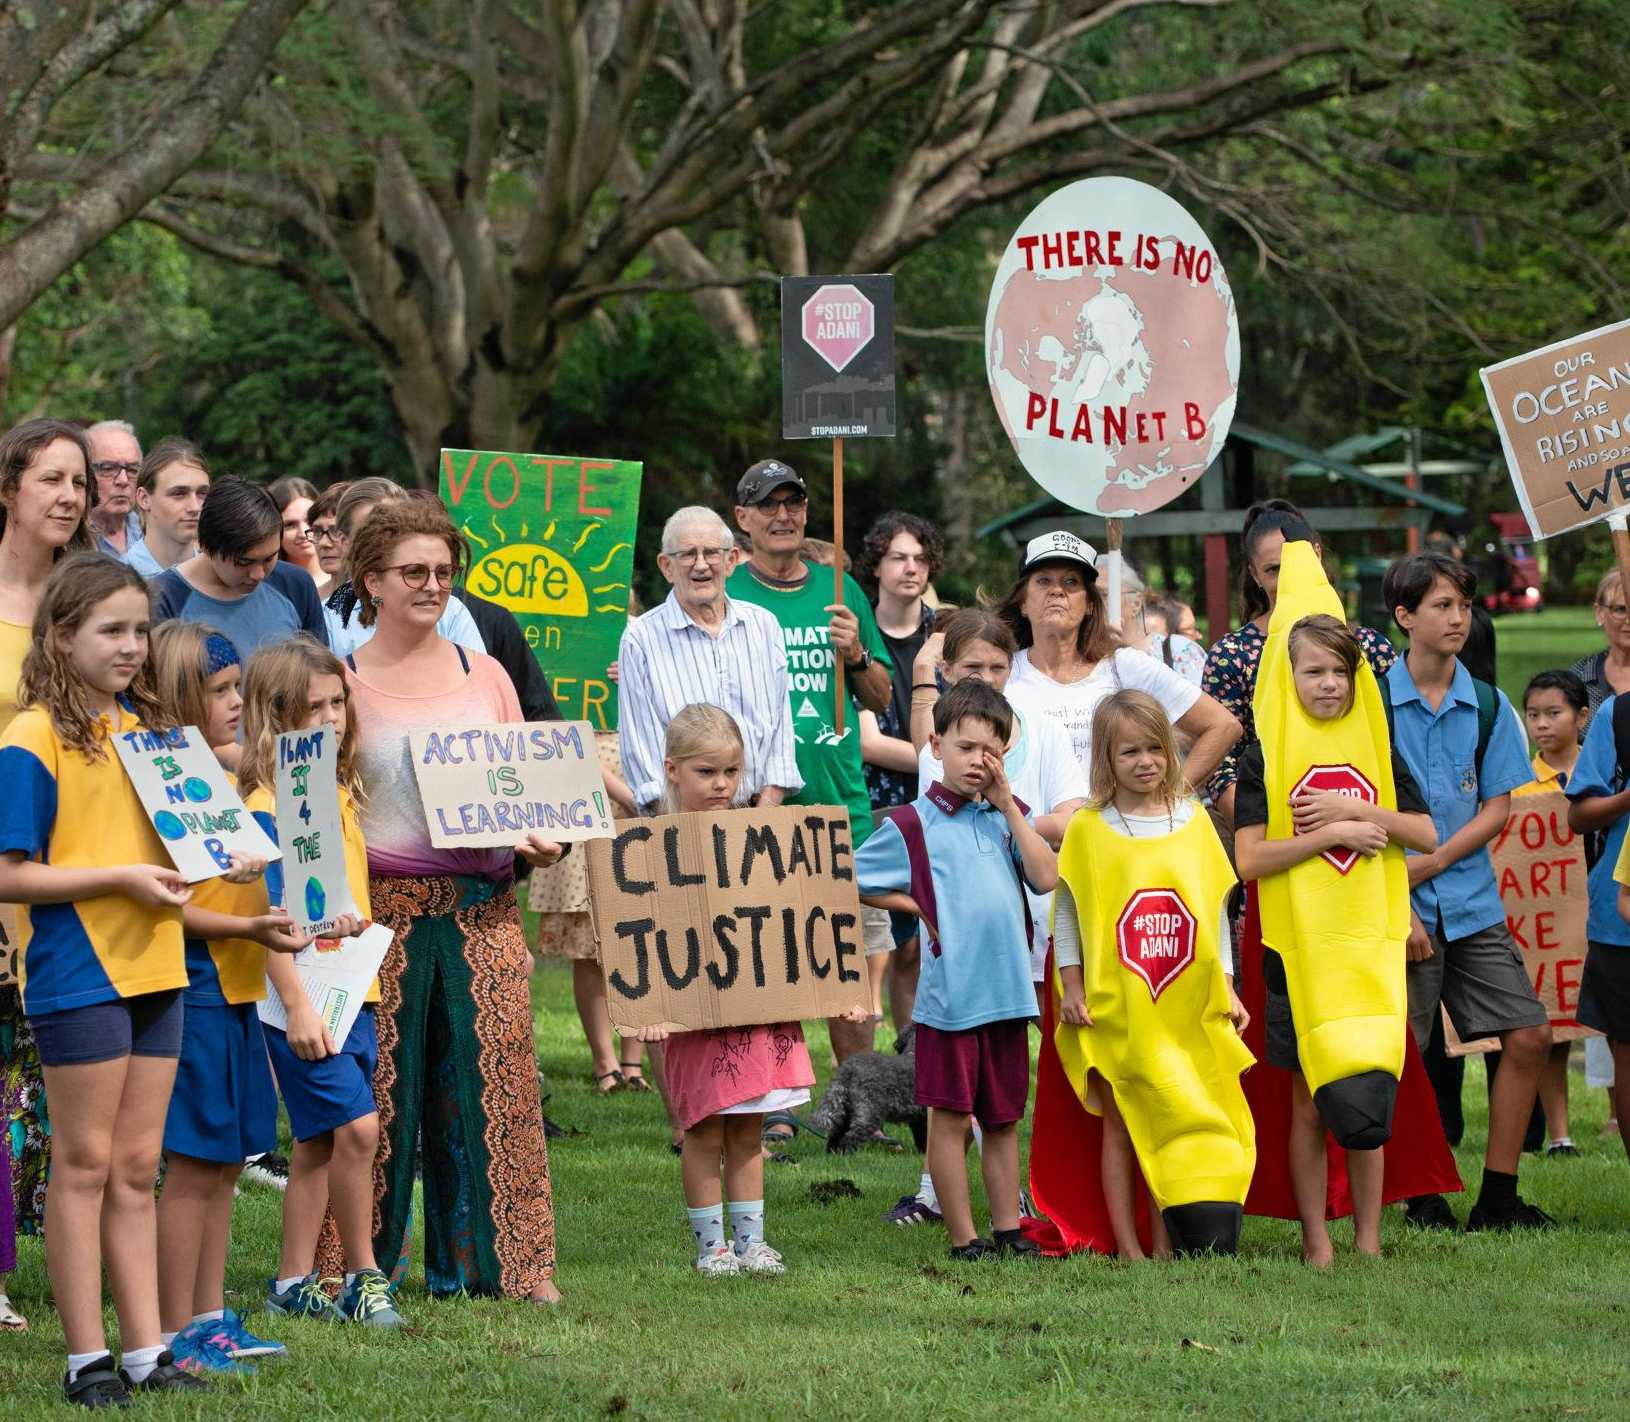 Protesters call for action on climate change.